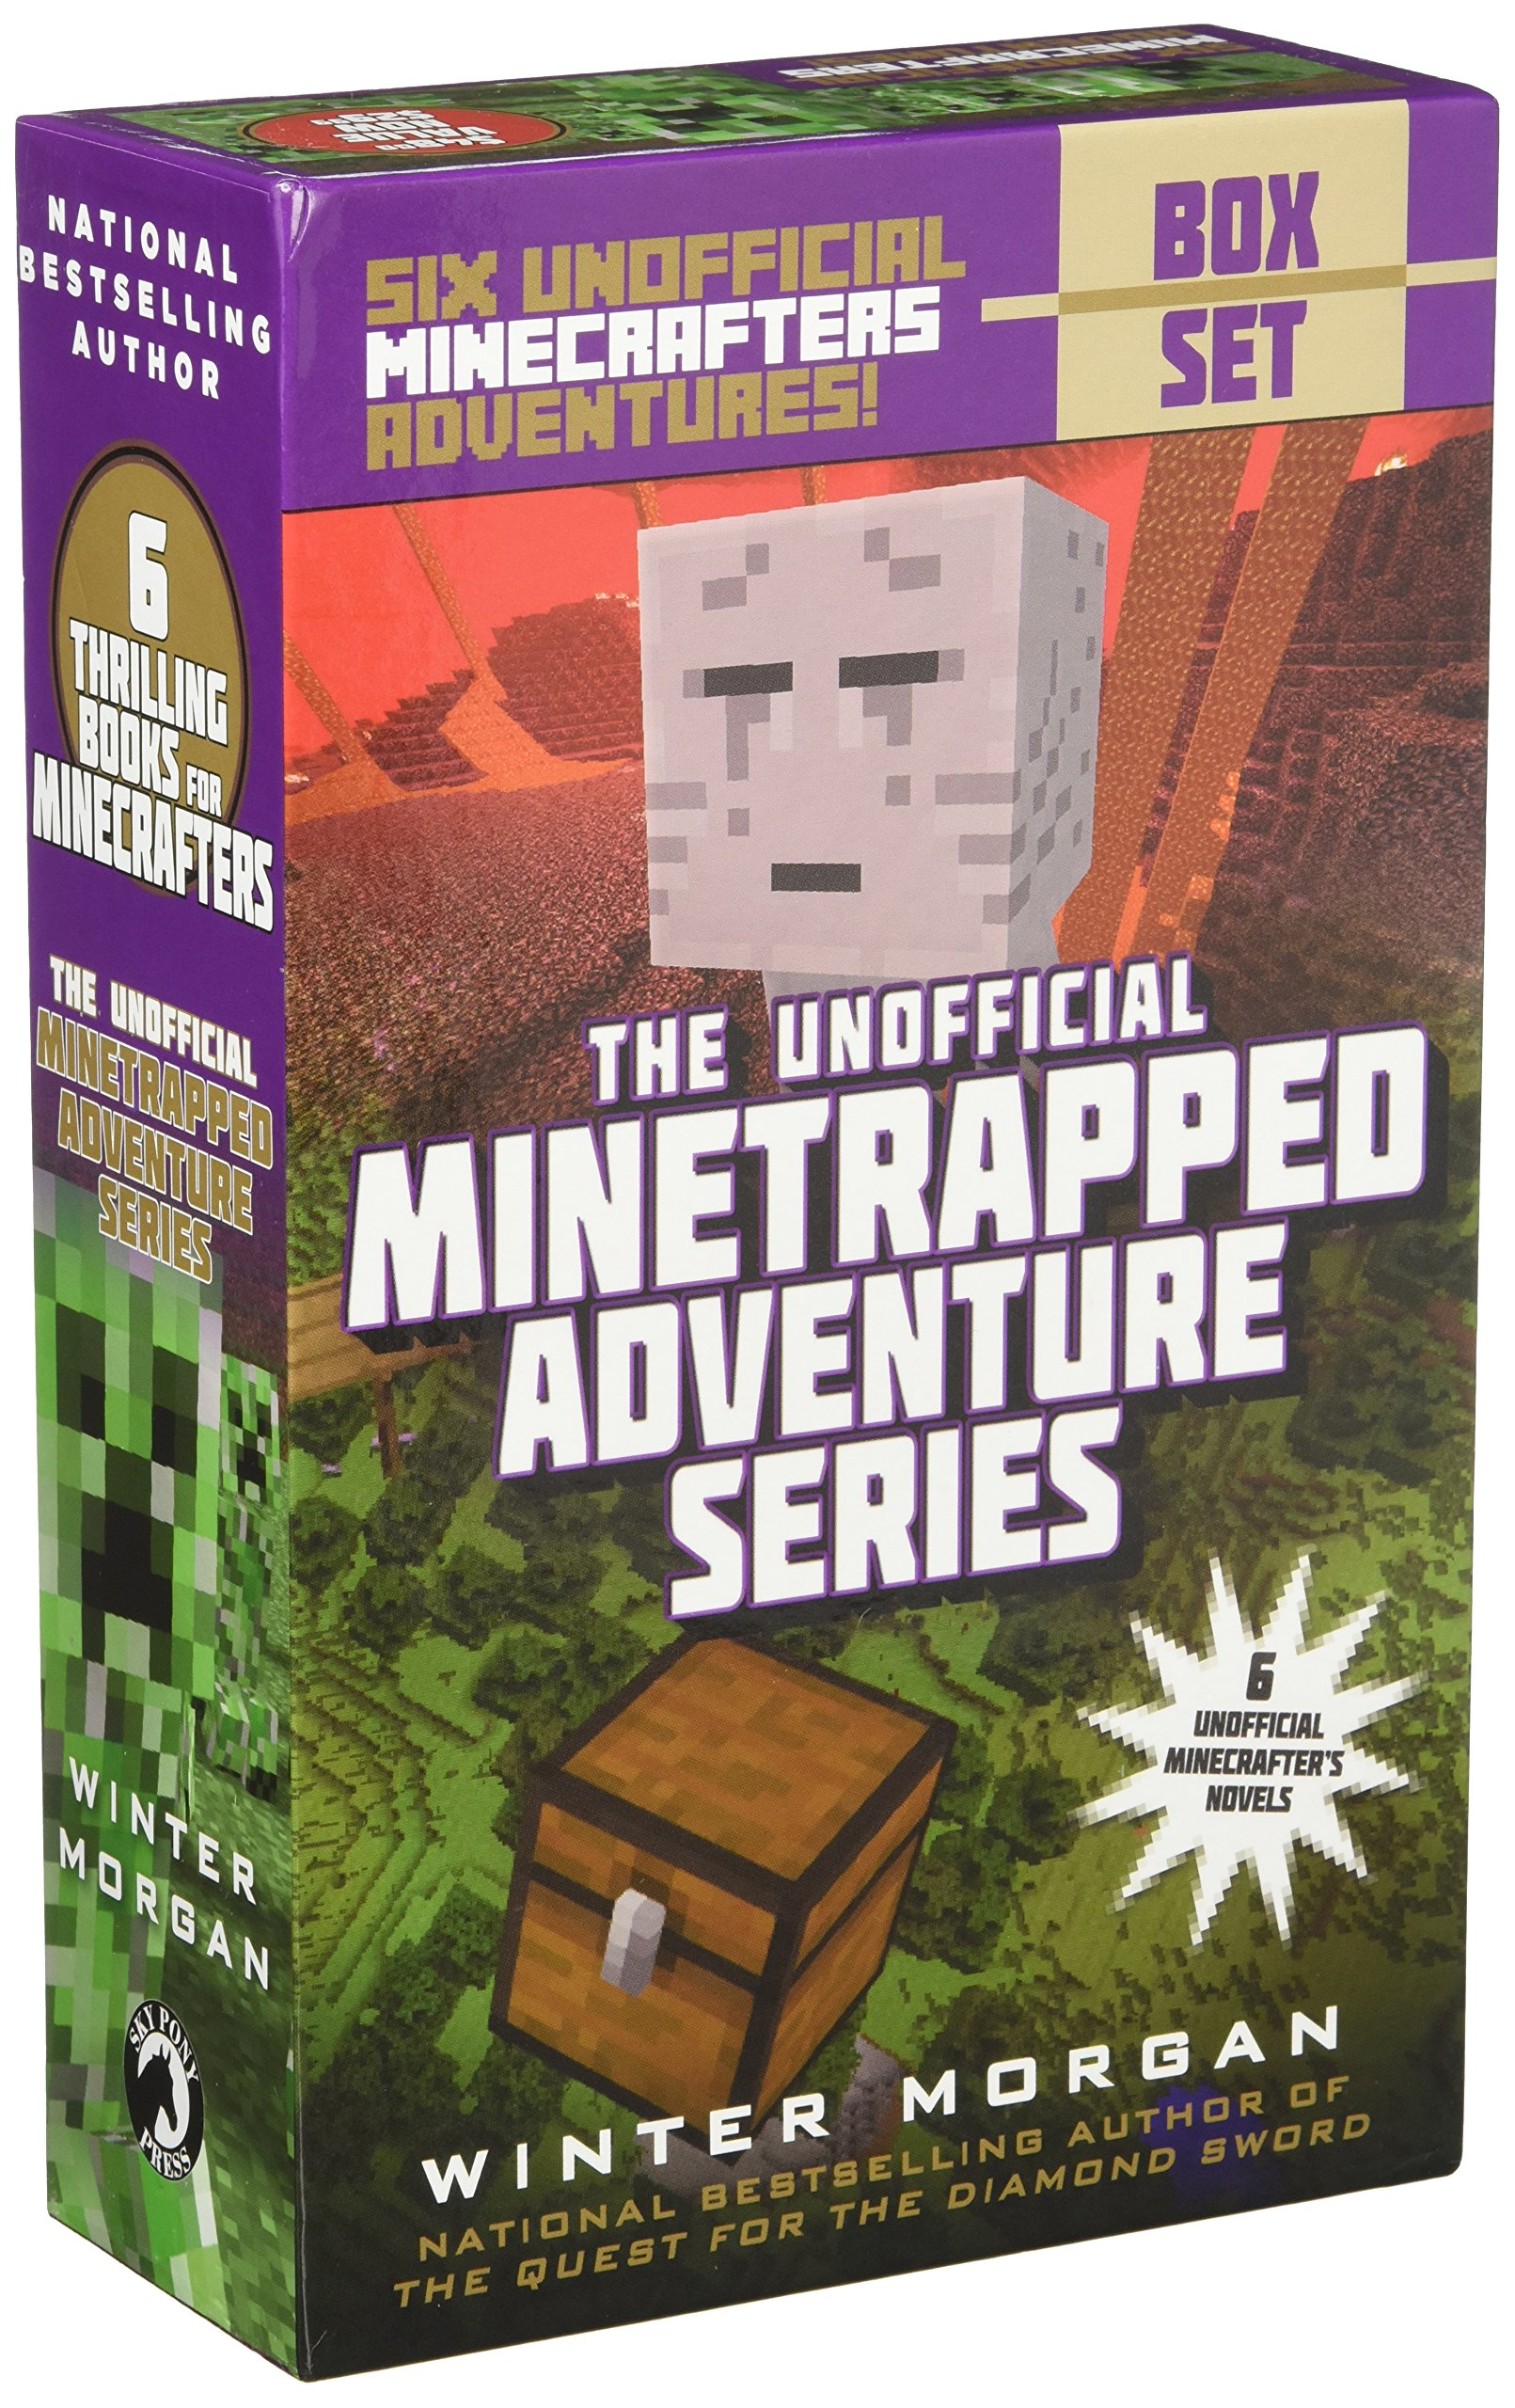 An Unofficial Minetrapped Adventure Series Box Set: Six Unofficial Minecrafters Adventures! by Sky Pony Press (Image #2)